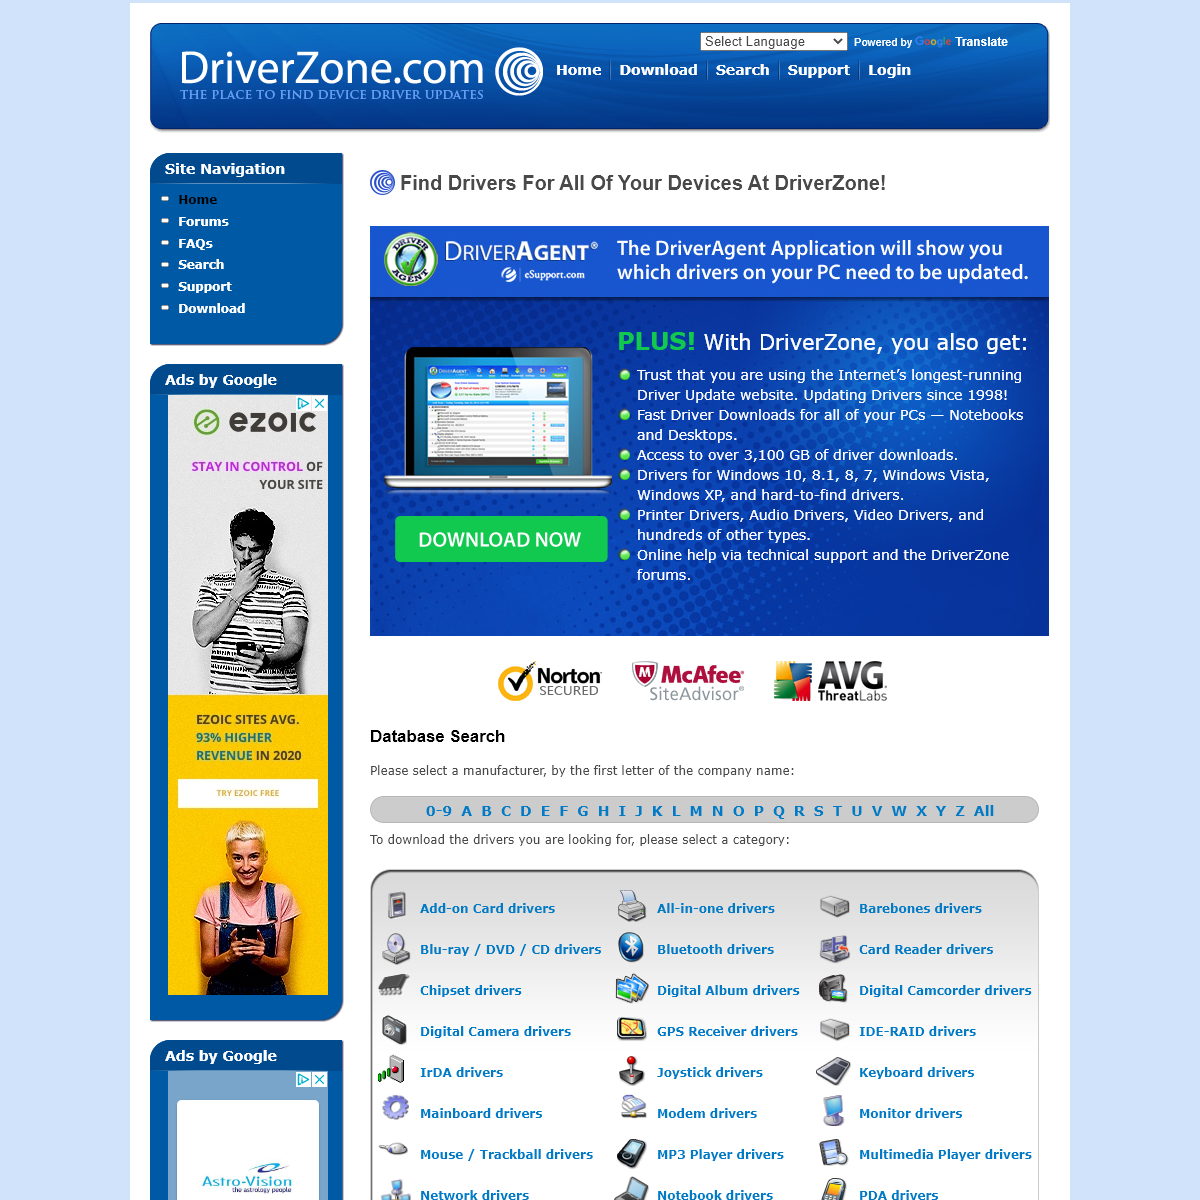 Find Drivers For All Of Your Devices At DriverZone! - DriverZone